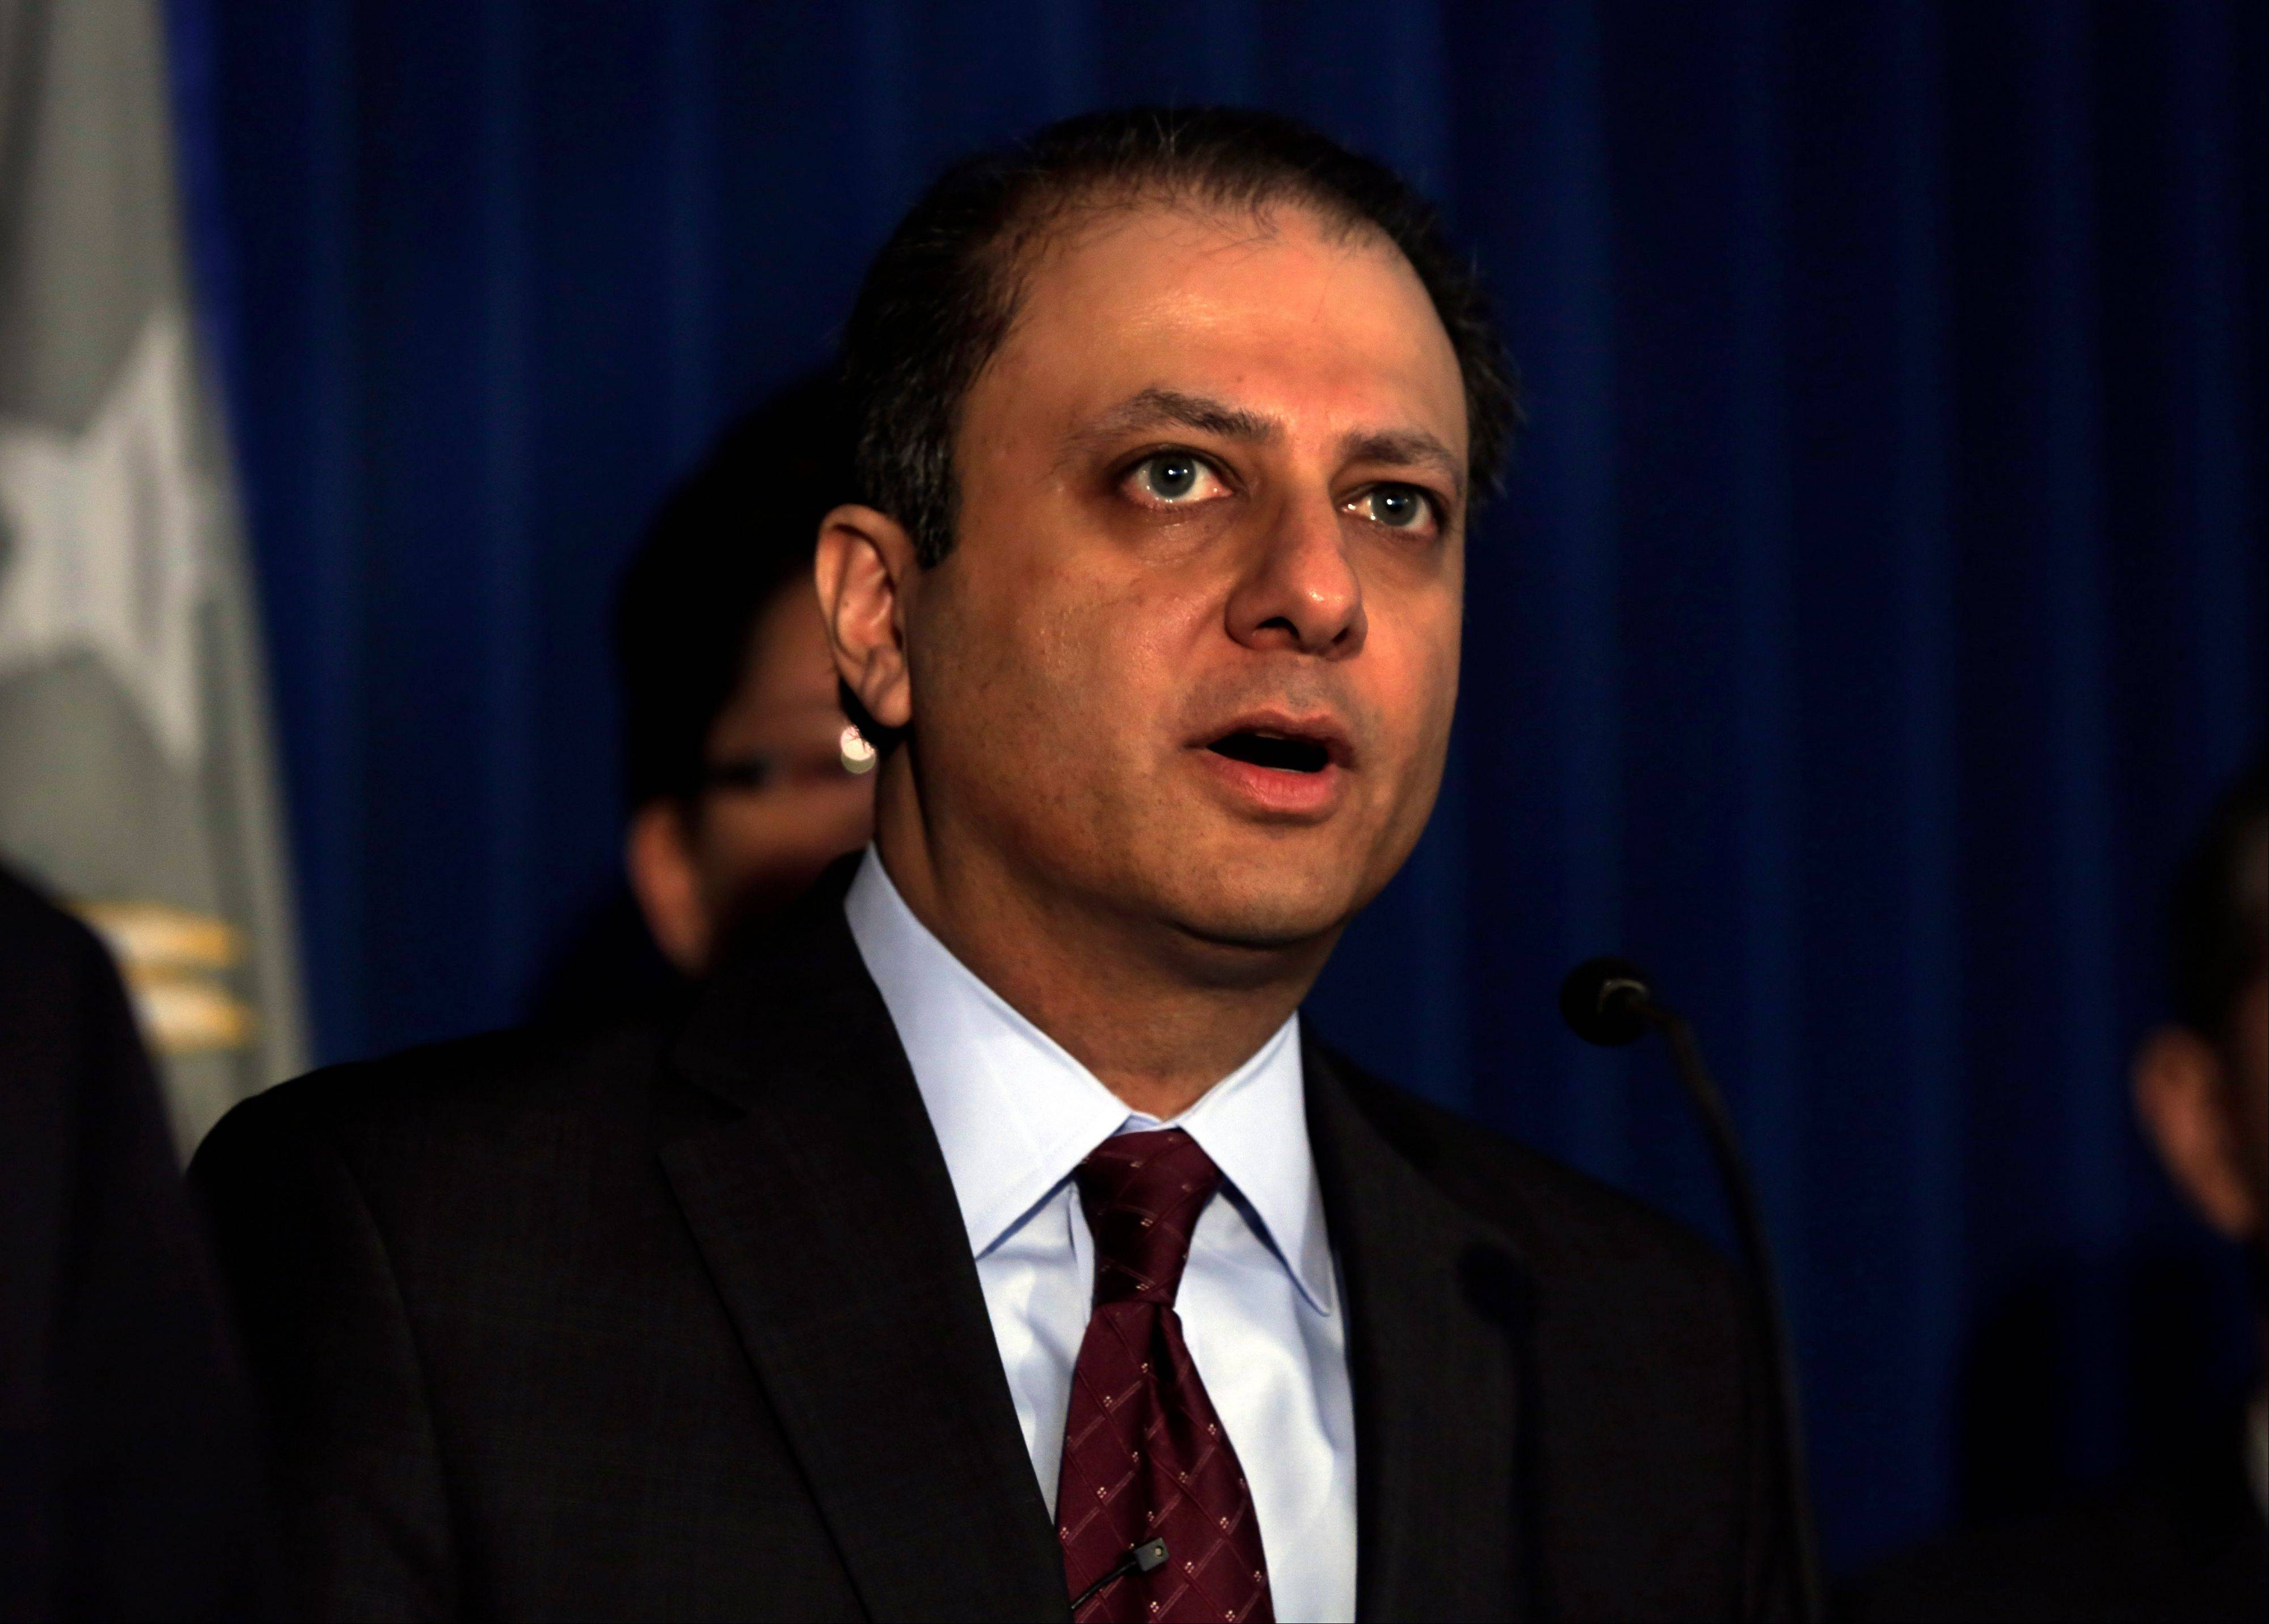 U.S. Attorney Preet Bharara said Tuesday that Malcolm Smith, who has served at times as the New York state Senate�s majority and minority leader since becoming a senator in March 2000, was arrested along with Republican New York City Councilman Dan Halloran and four other political figures. Bharara said Smith �tried to bribe his way to a shot at Gracie Mansion,� the official New York City mayor�s residence.